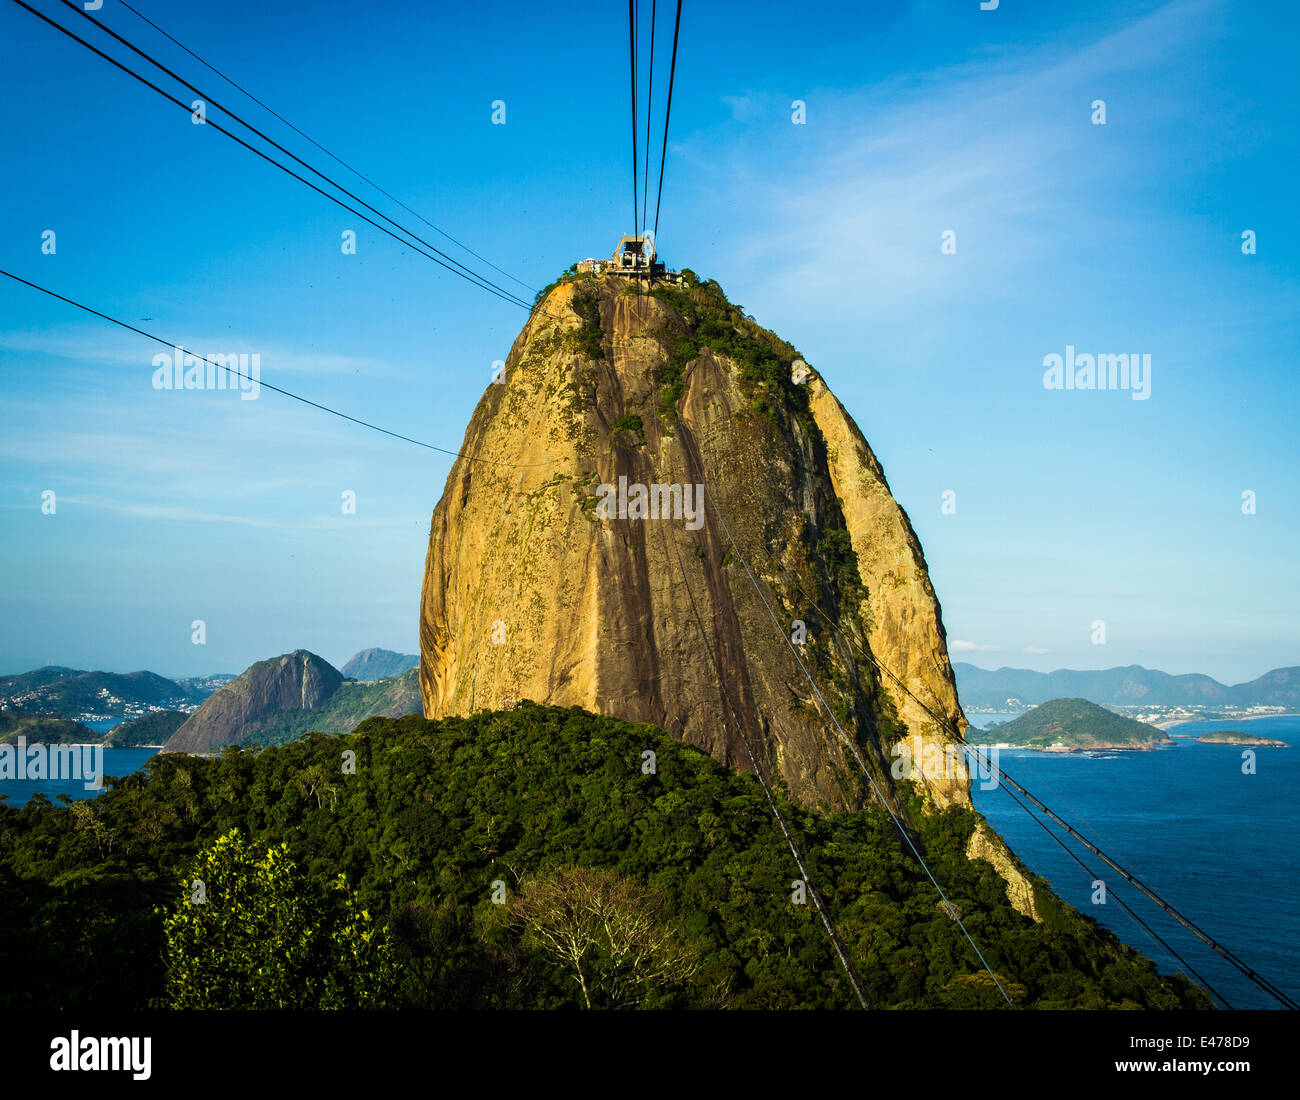 View of the Sugarloaf Mountain from the cable car, Rio de Janeiro, Brazil. - Stock Image